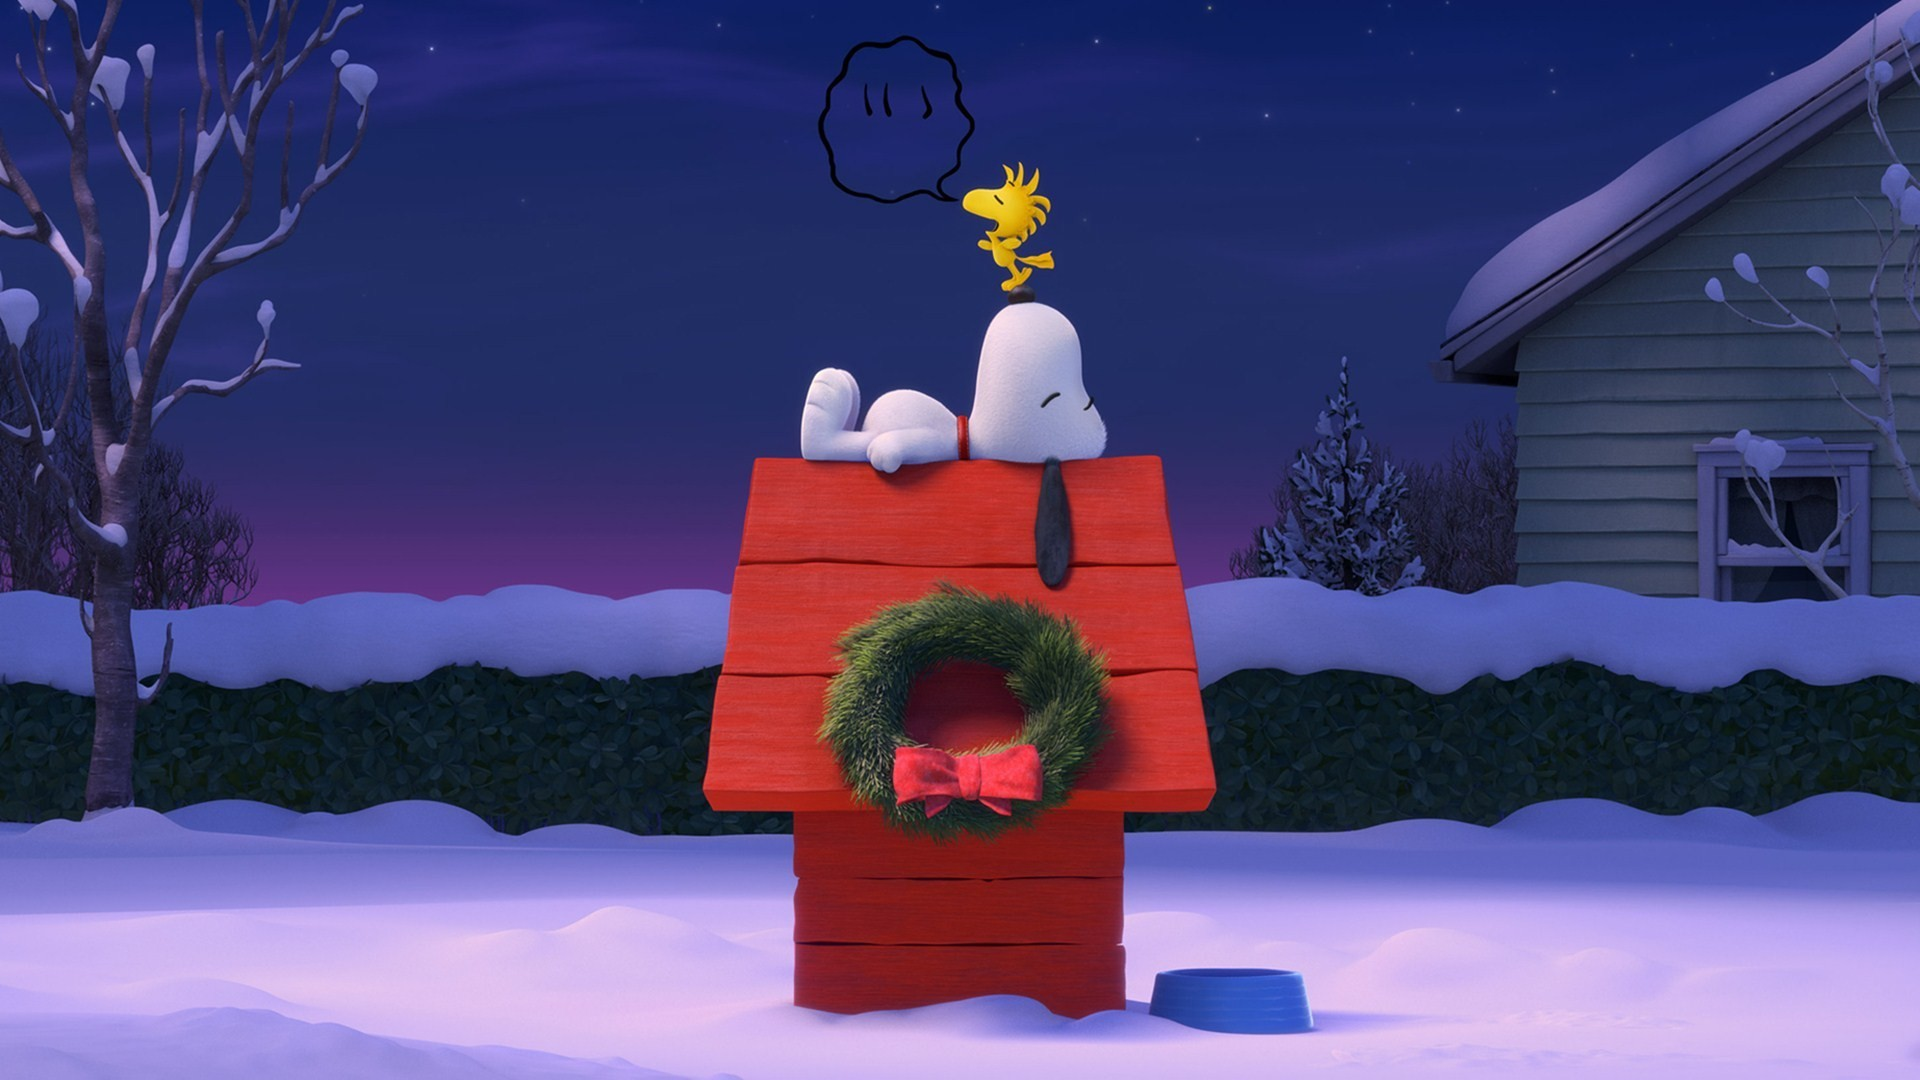 1920x1080 Collection Charlie Brown Christmas Wallpaper For Widescreen